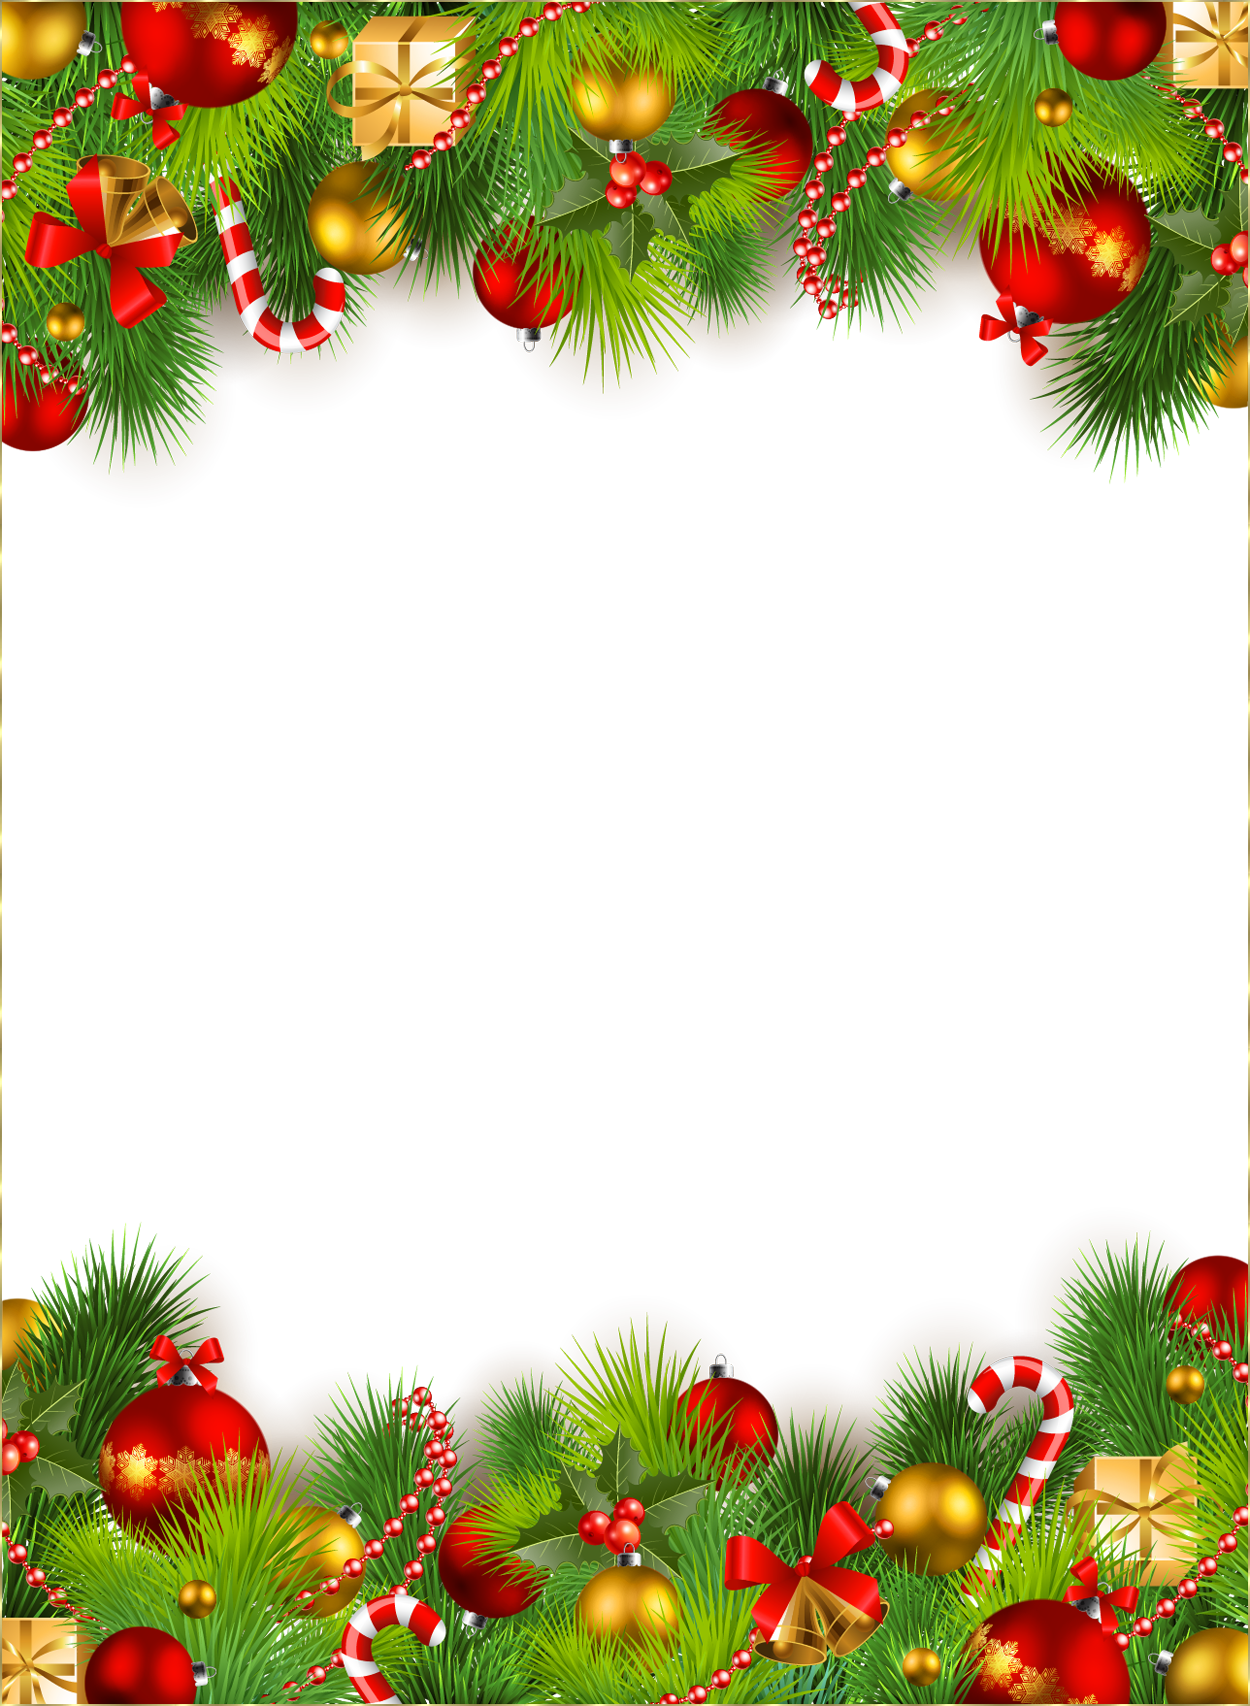 Christmas PNG Image Without Background   Web Icons PNG